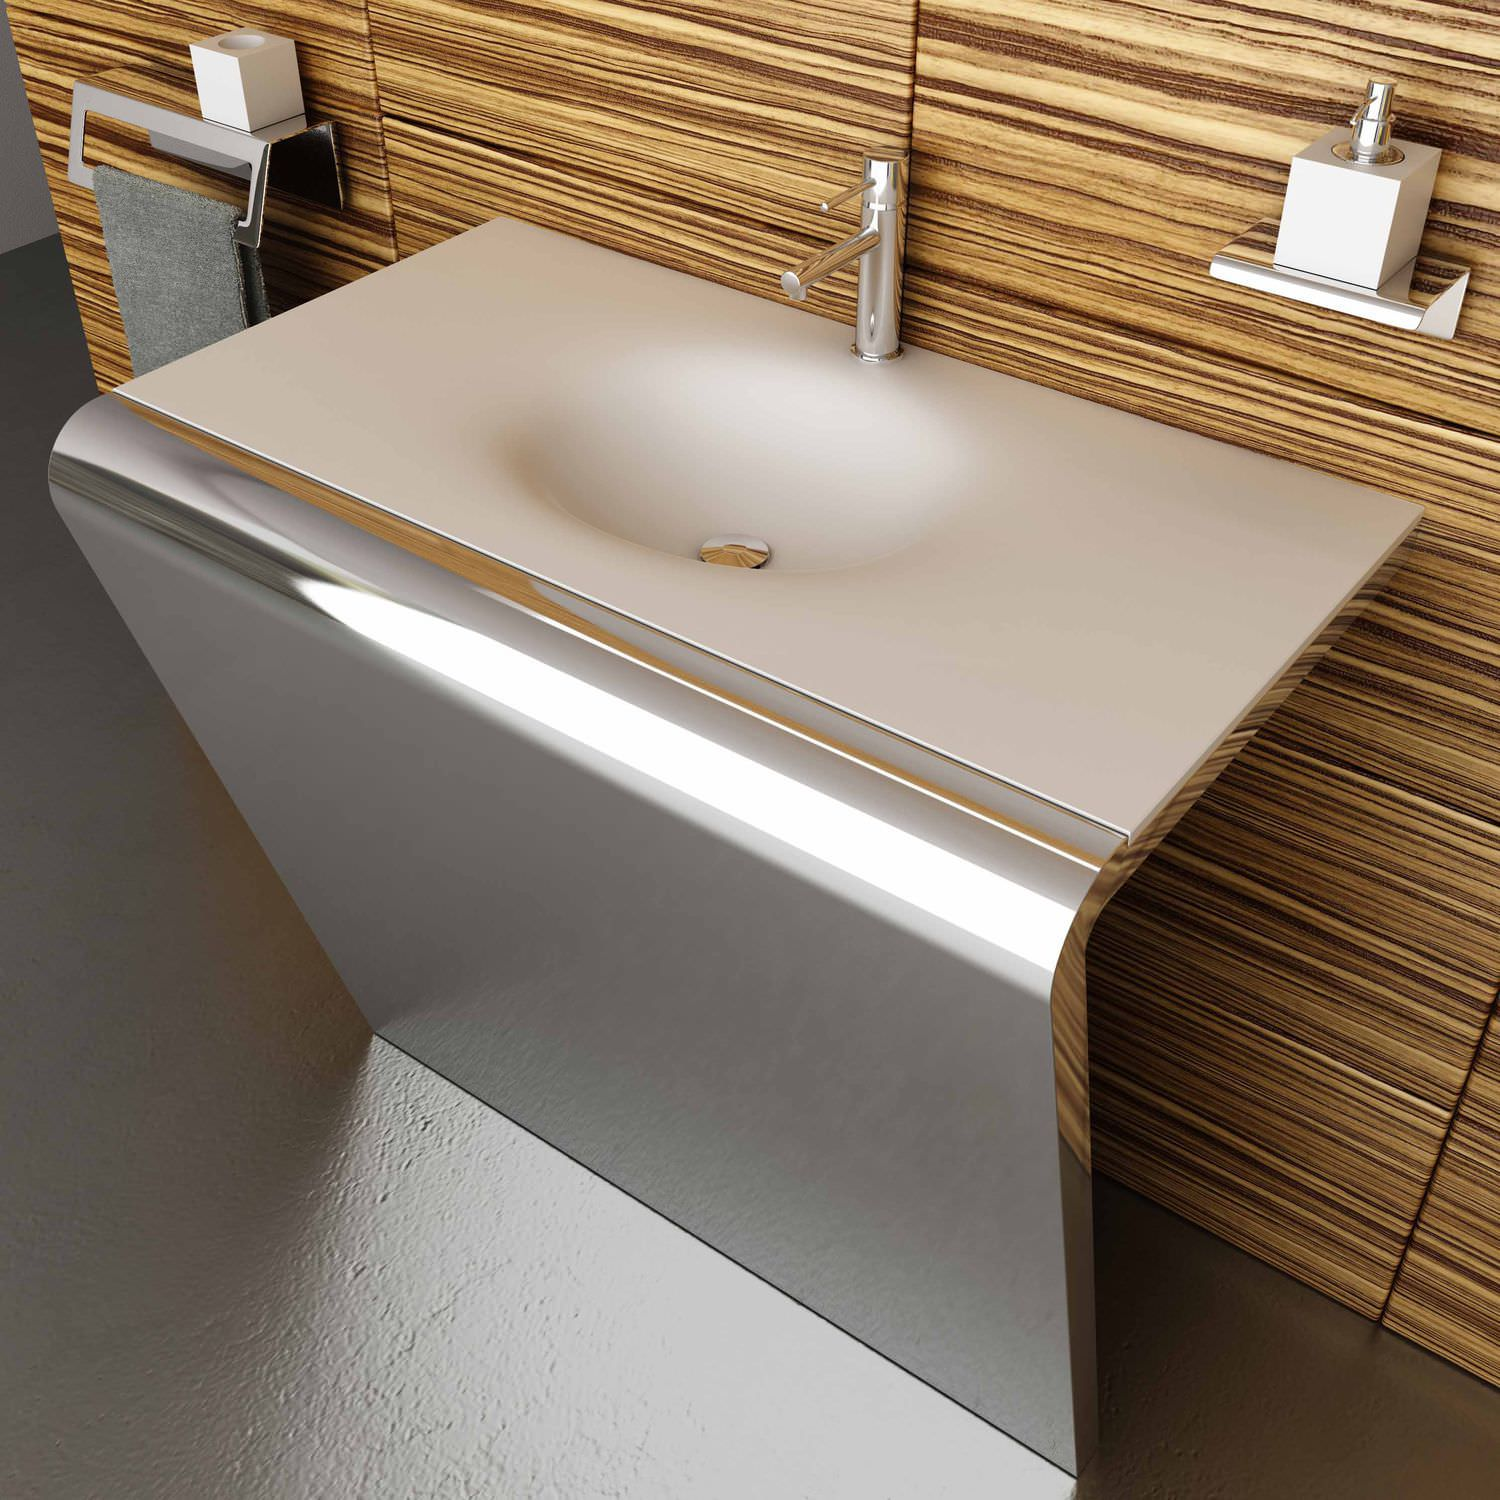 Countertop washbasin / rectangular / Corian® / stainless steel ...